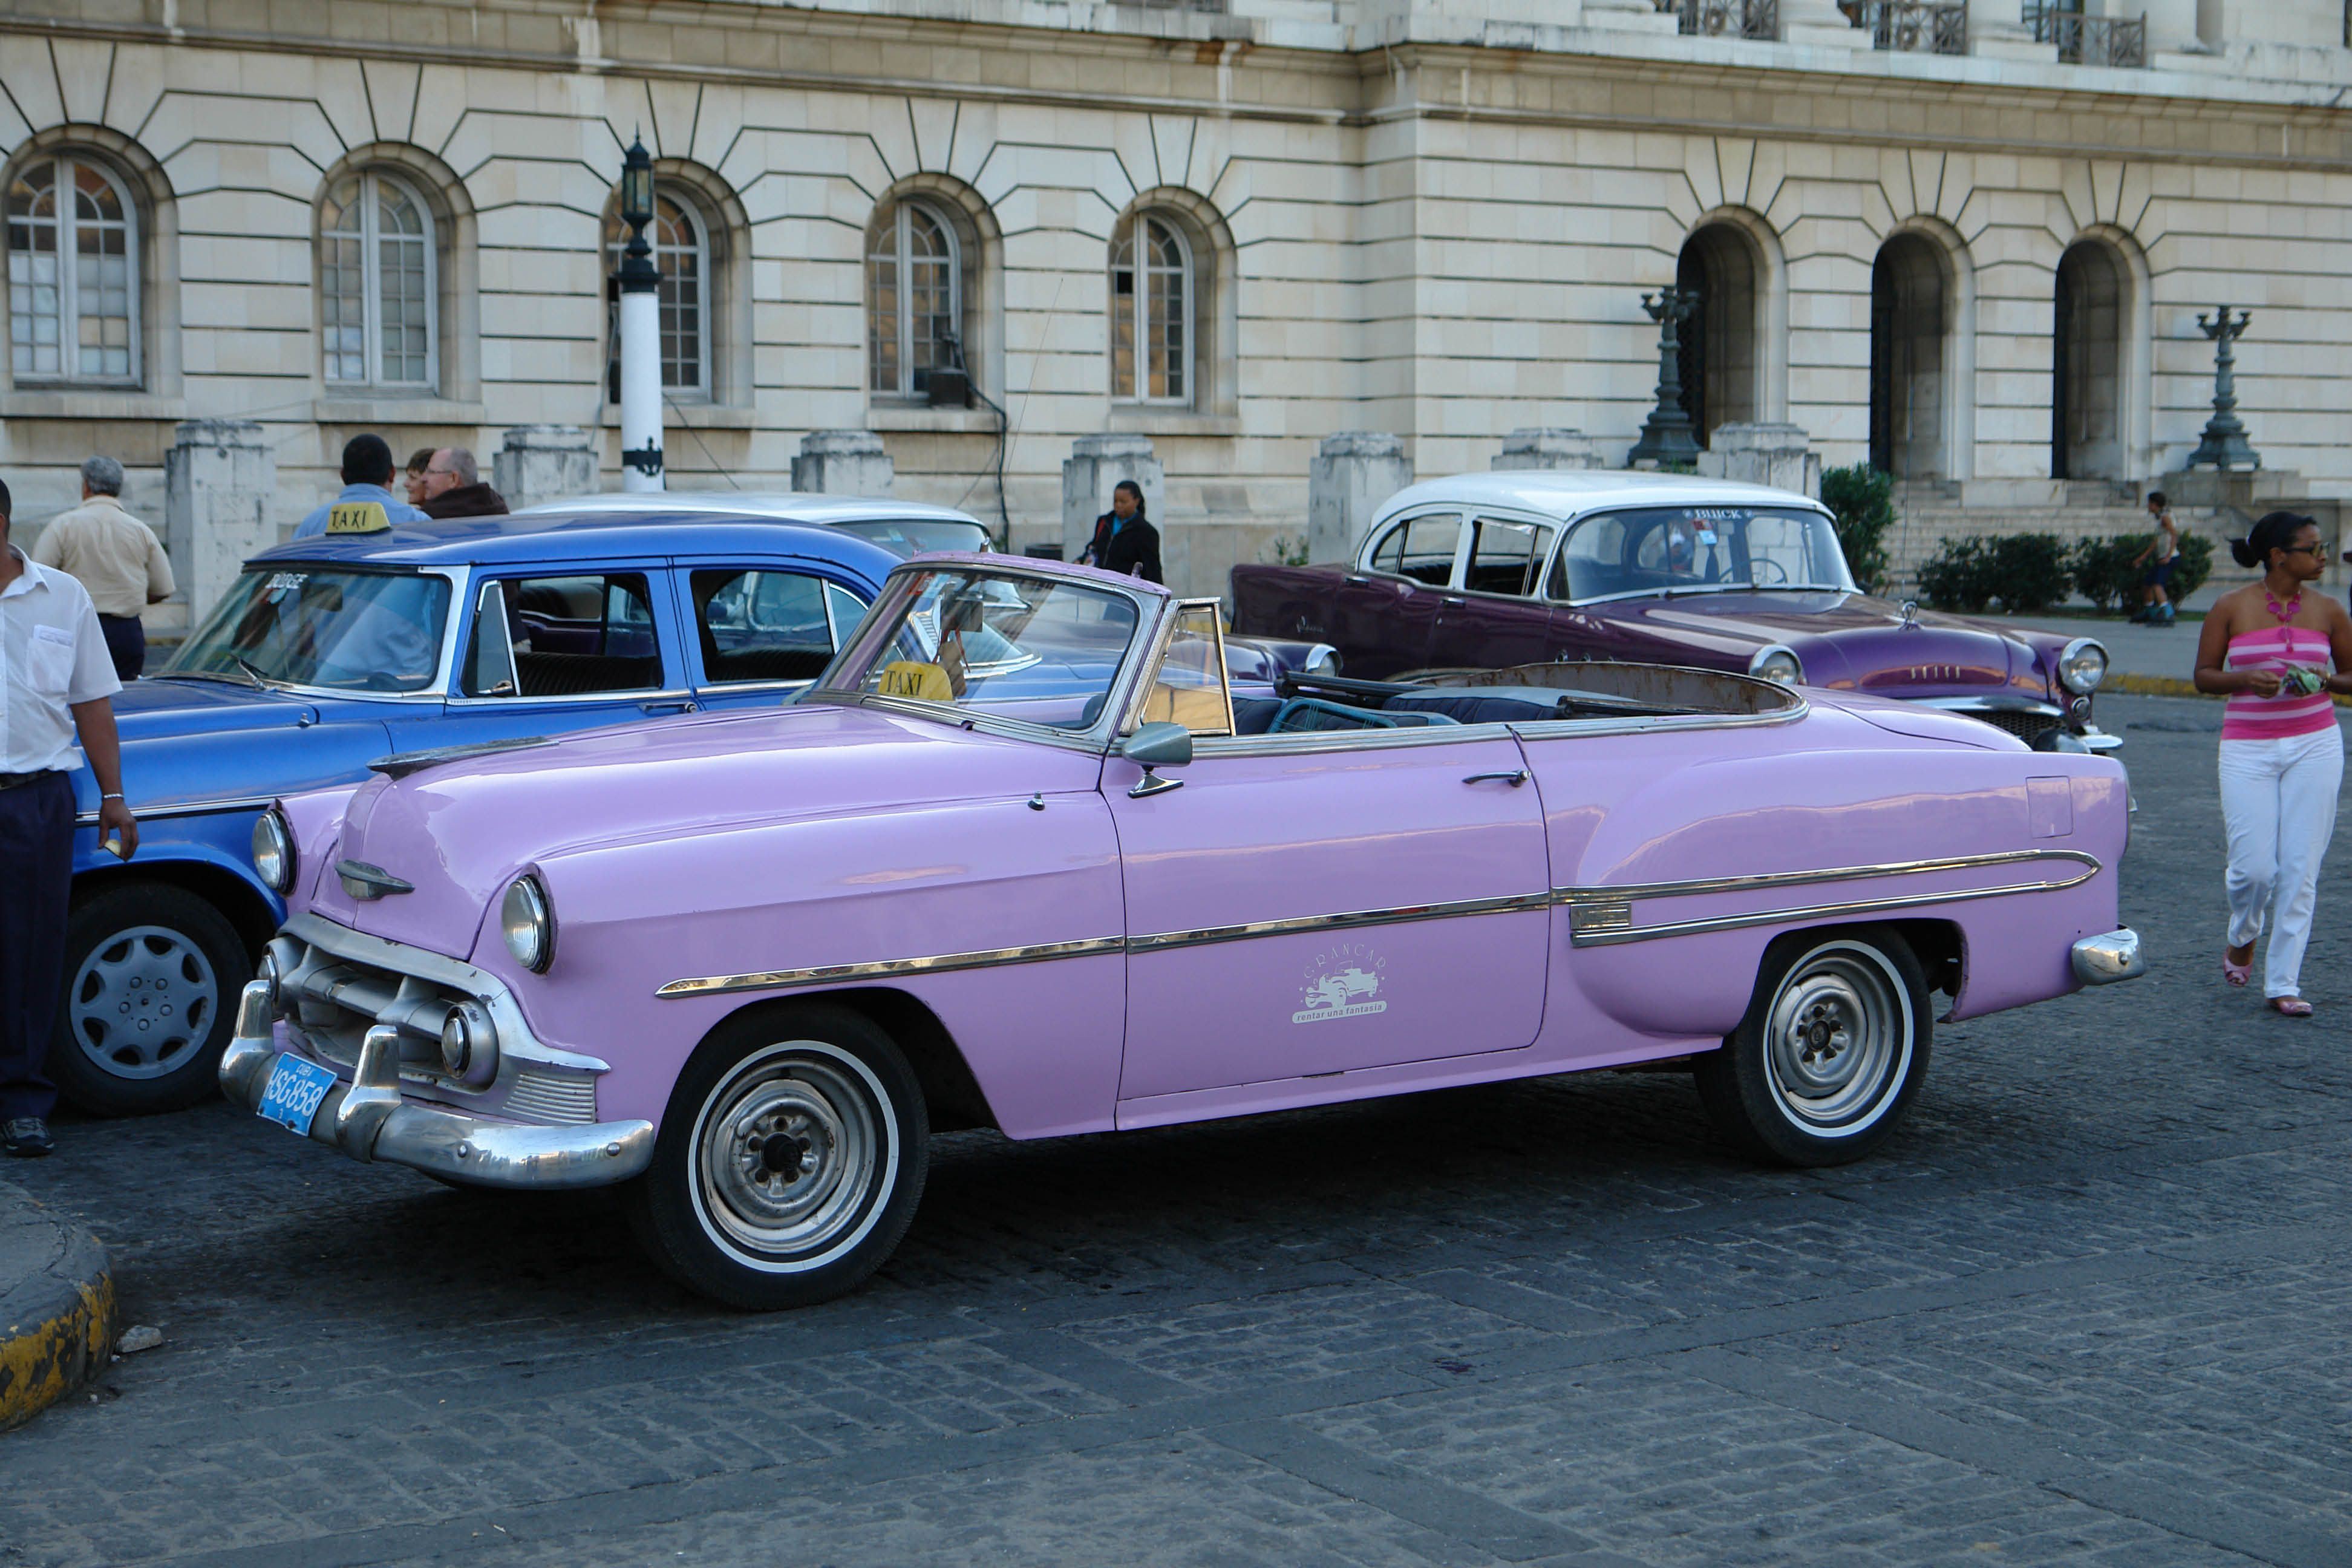 vintage purple car | ... - Blog - Havana: World\'s Largest Living ...